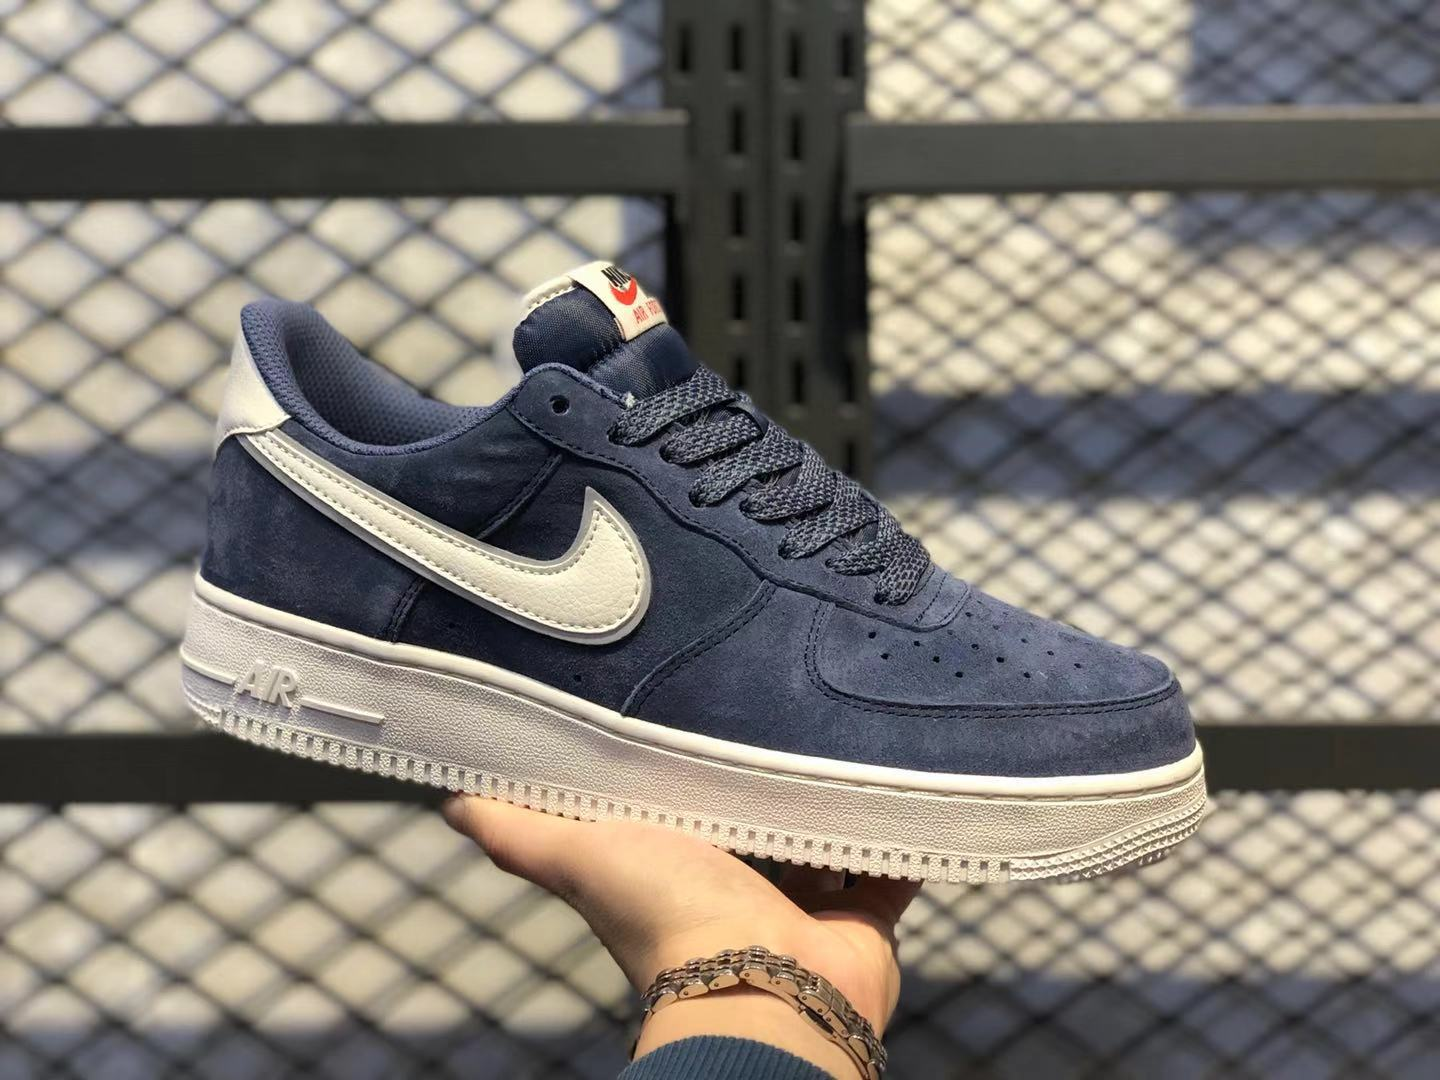 Nike Air Force 1'07 Monsoon Blue/Sail Casual Sneakers For Sale AQ8741-401